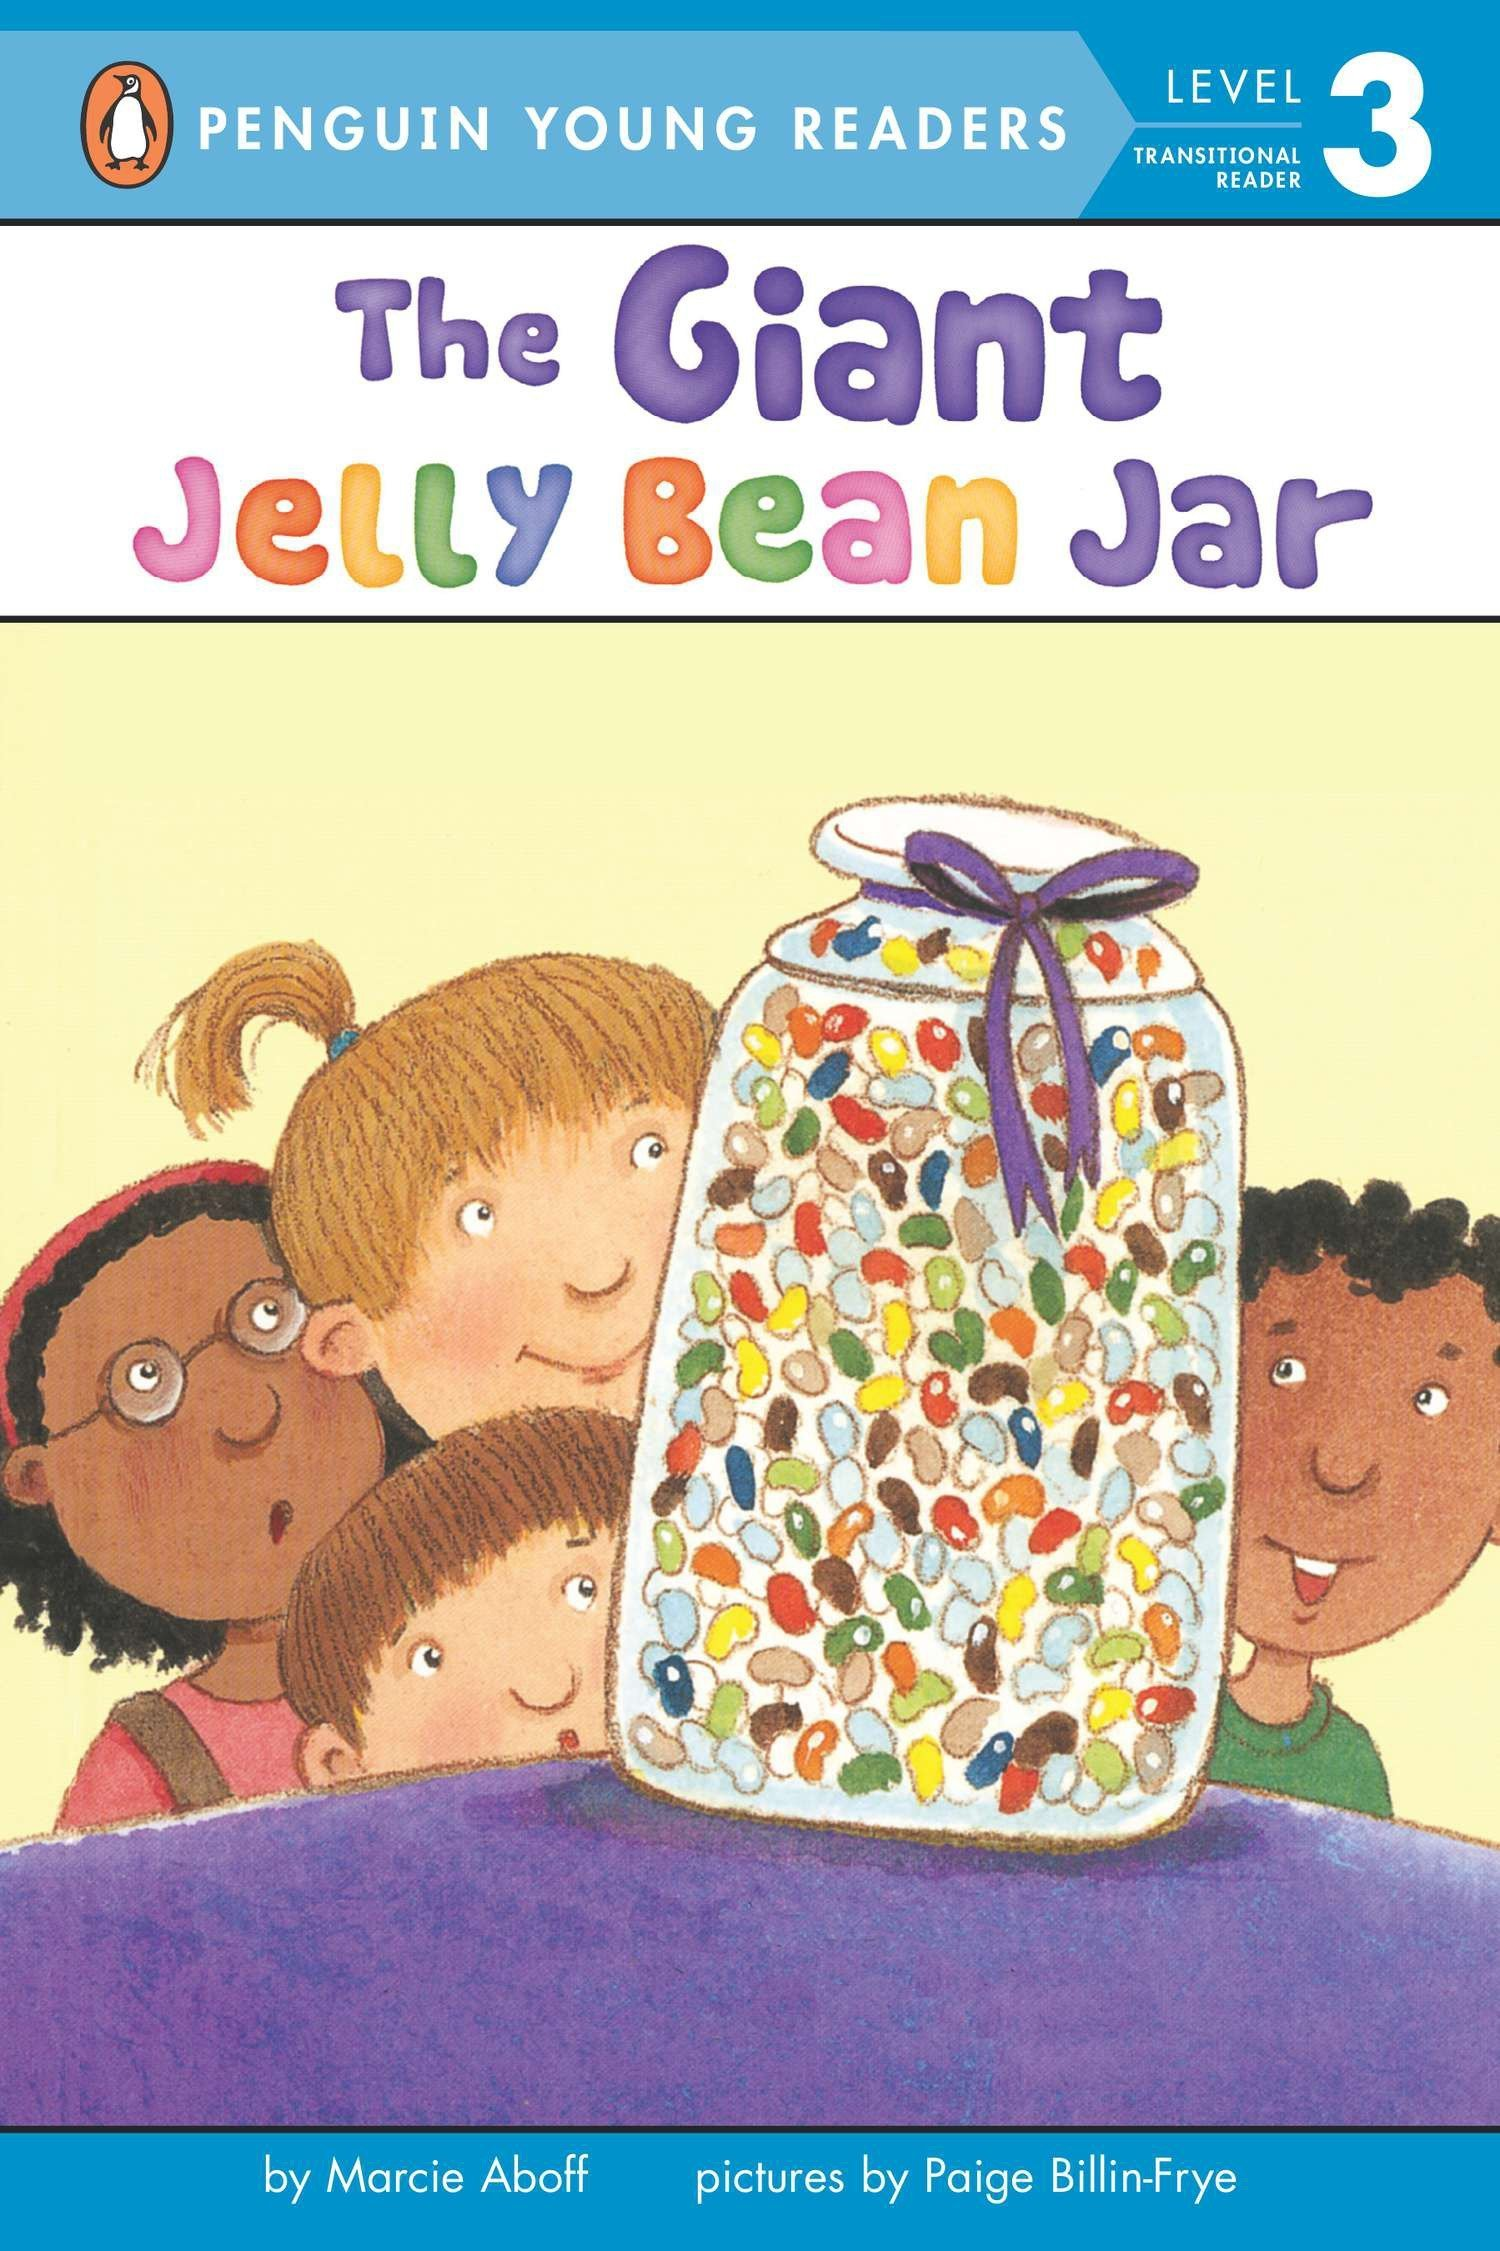 Amazon.com: The Giant Jellybean Jar (Penguin Young Readers, Level 3)  (9780142400494): Marcie Aboff, Paige Billin Frye: Books